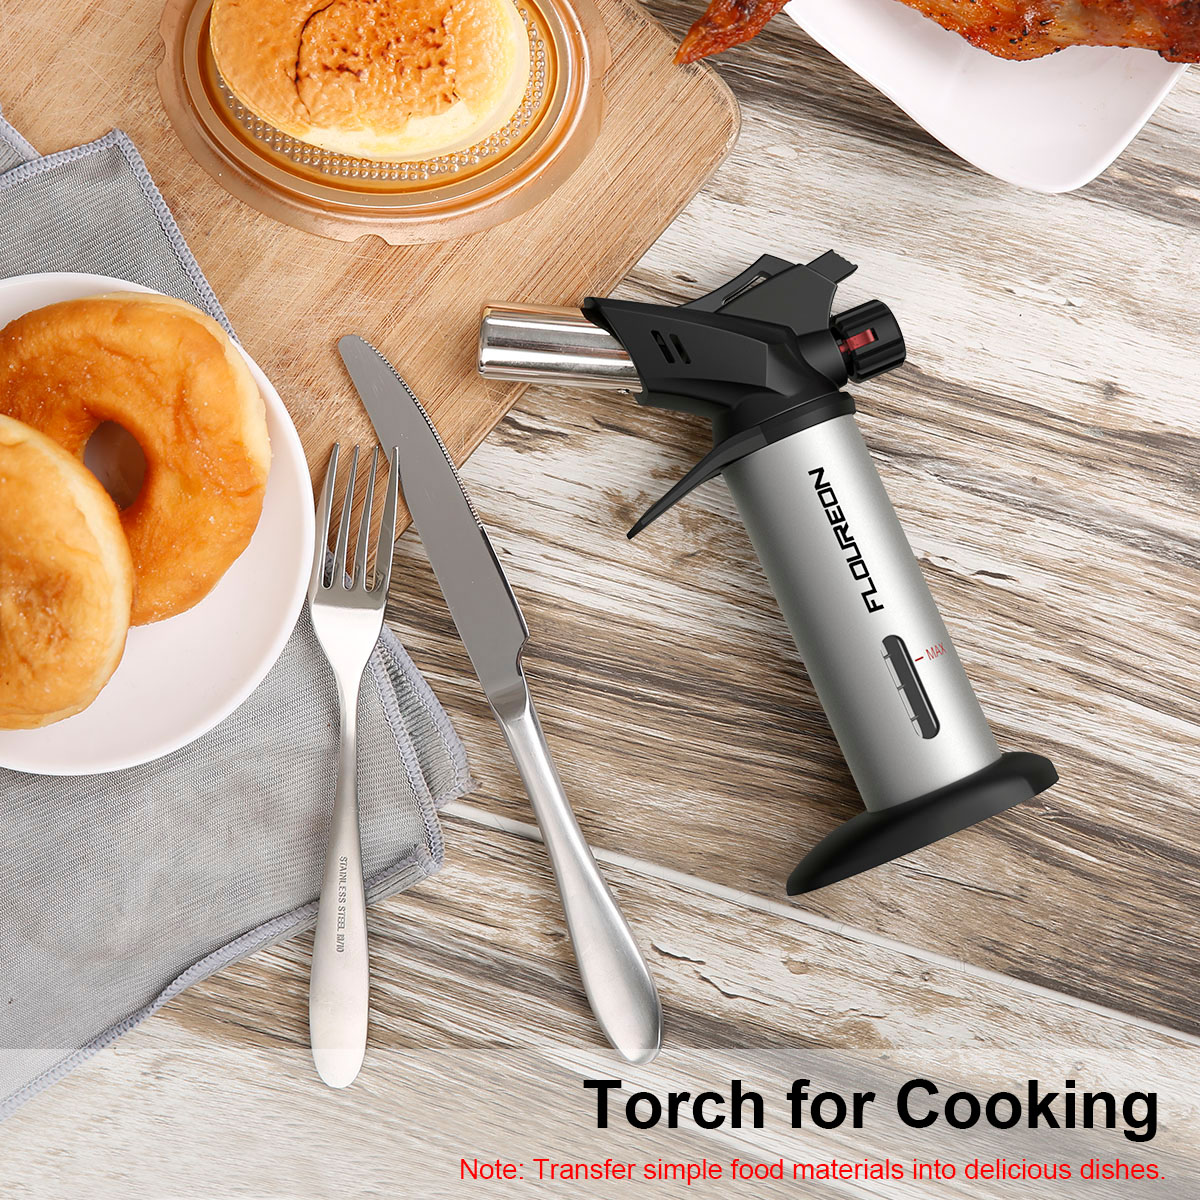 Floureon Food Cooking Blow Torch Kitchen Lighter Butan Torch With Safe Lock  For Cooking Hookah Welding BBQ Process Jewelry